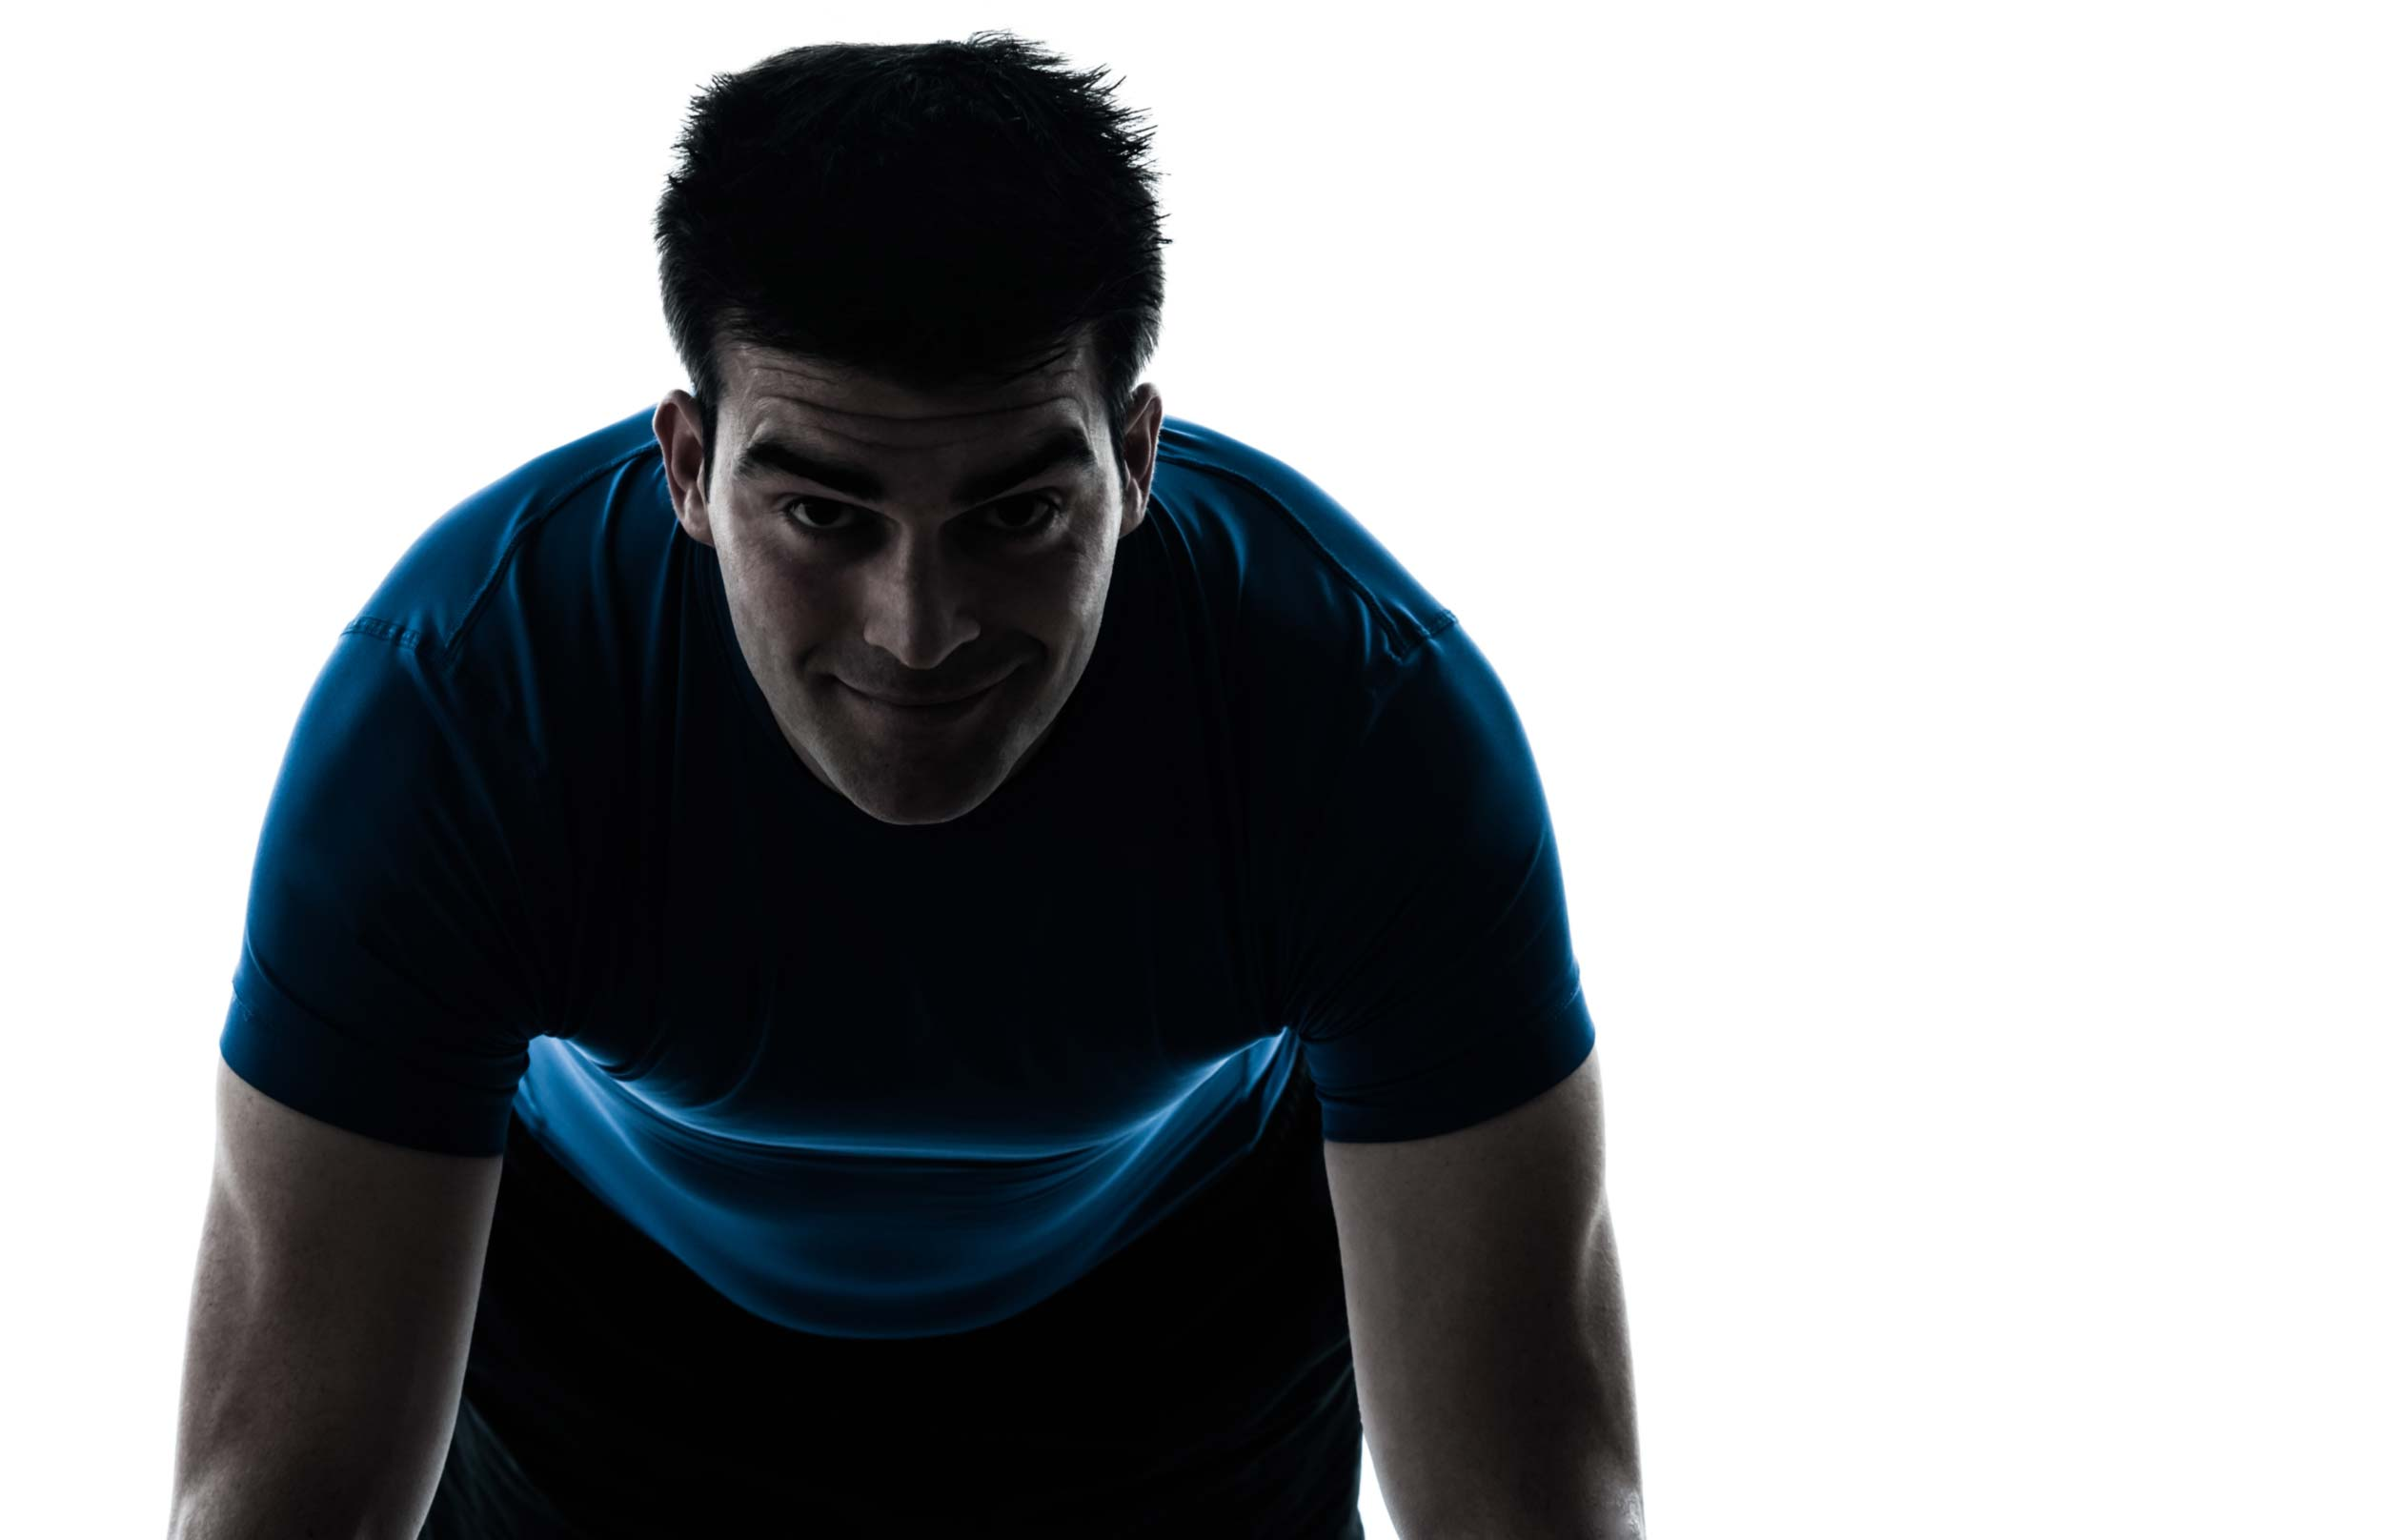 Physiotherapy Solutions - image of man exercising